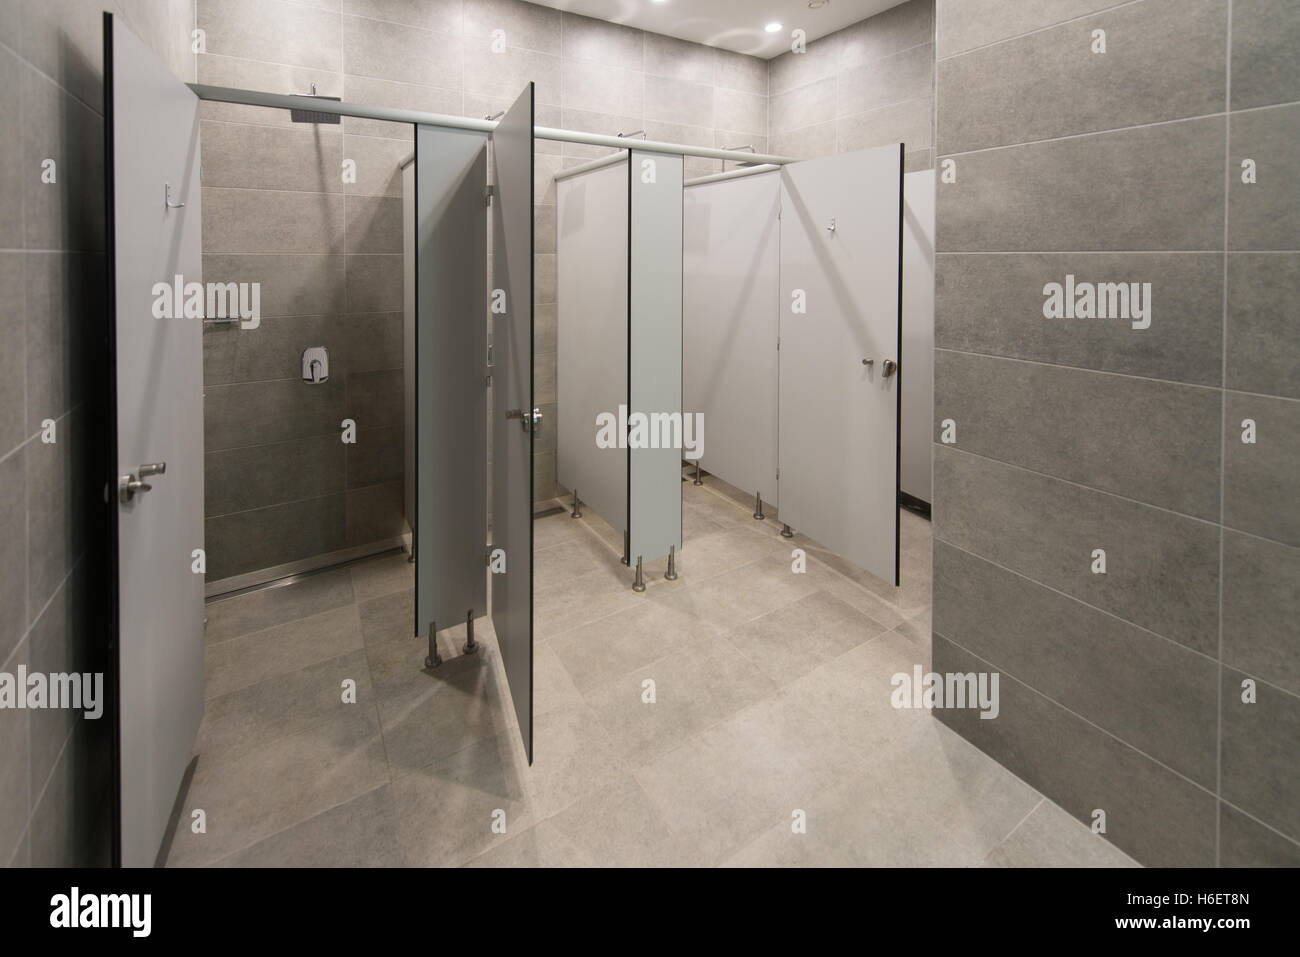 Modern interior of a shower room in fitness center gym